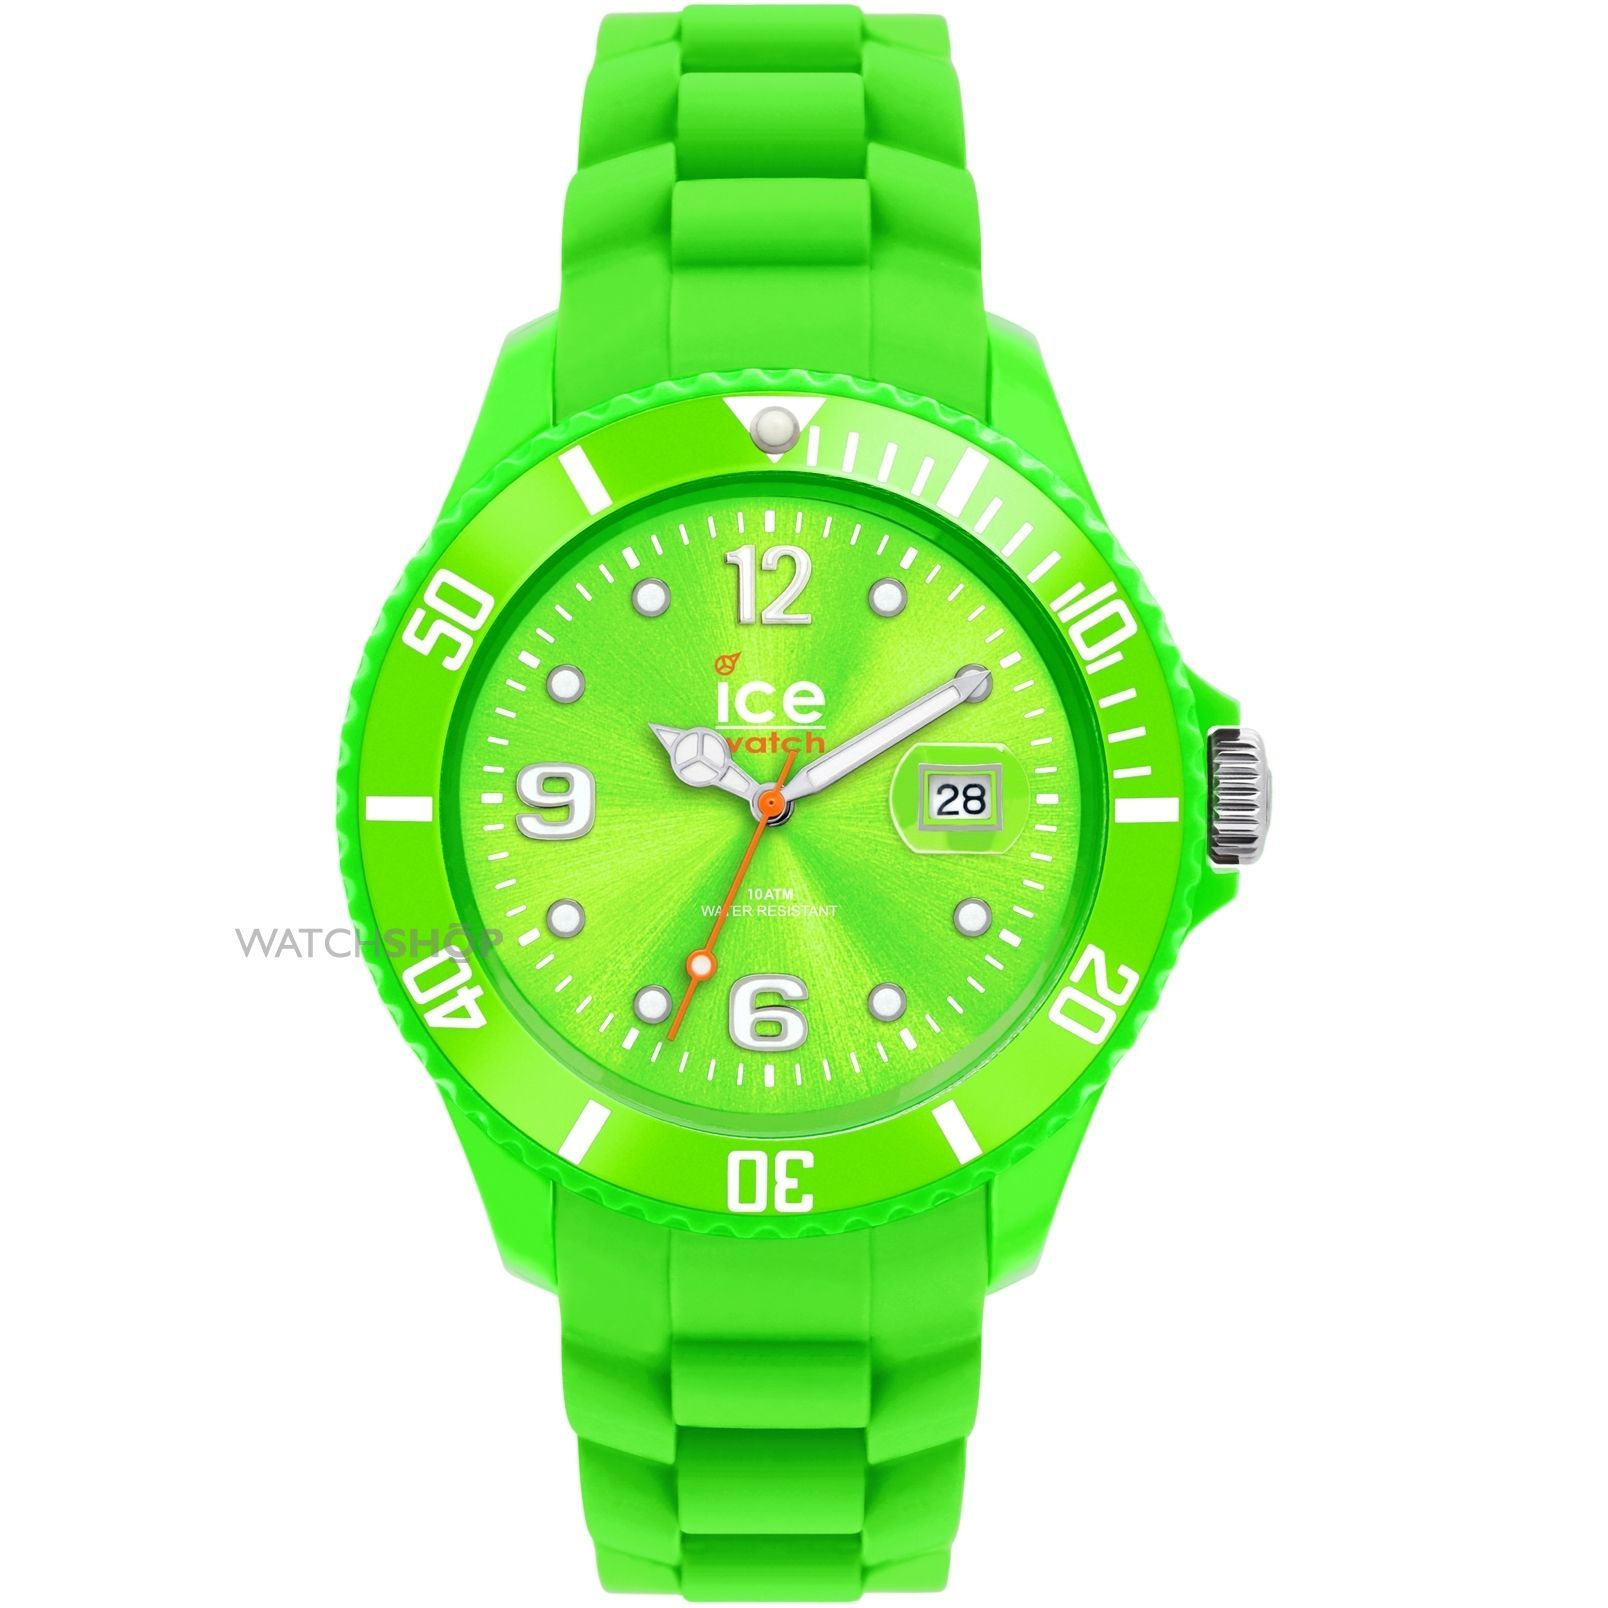 watches case store slow hour watch black canvas one swiss green octagon jo made the olive hand